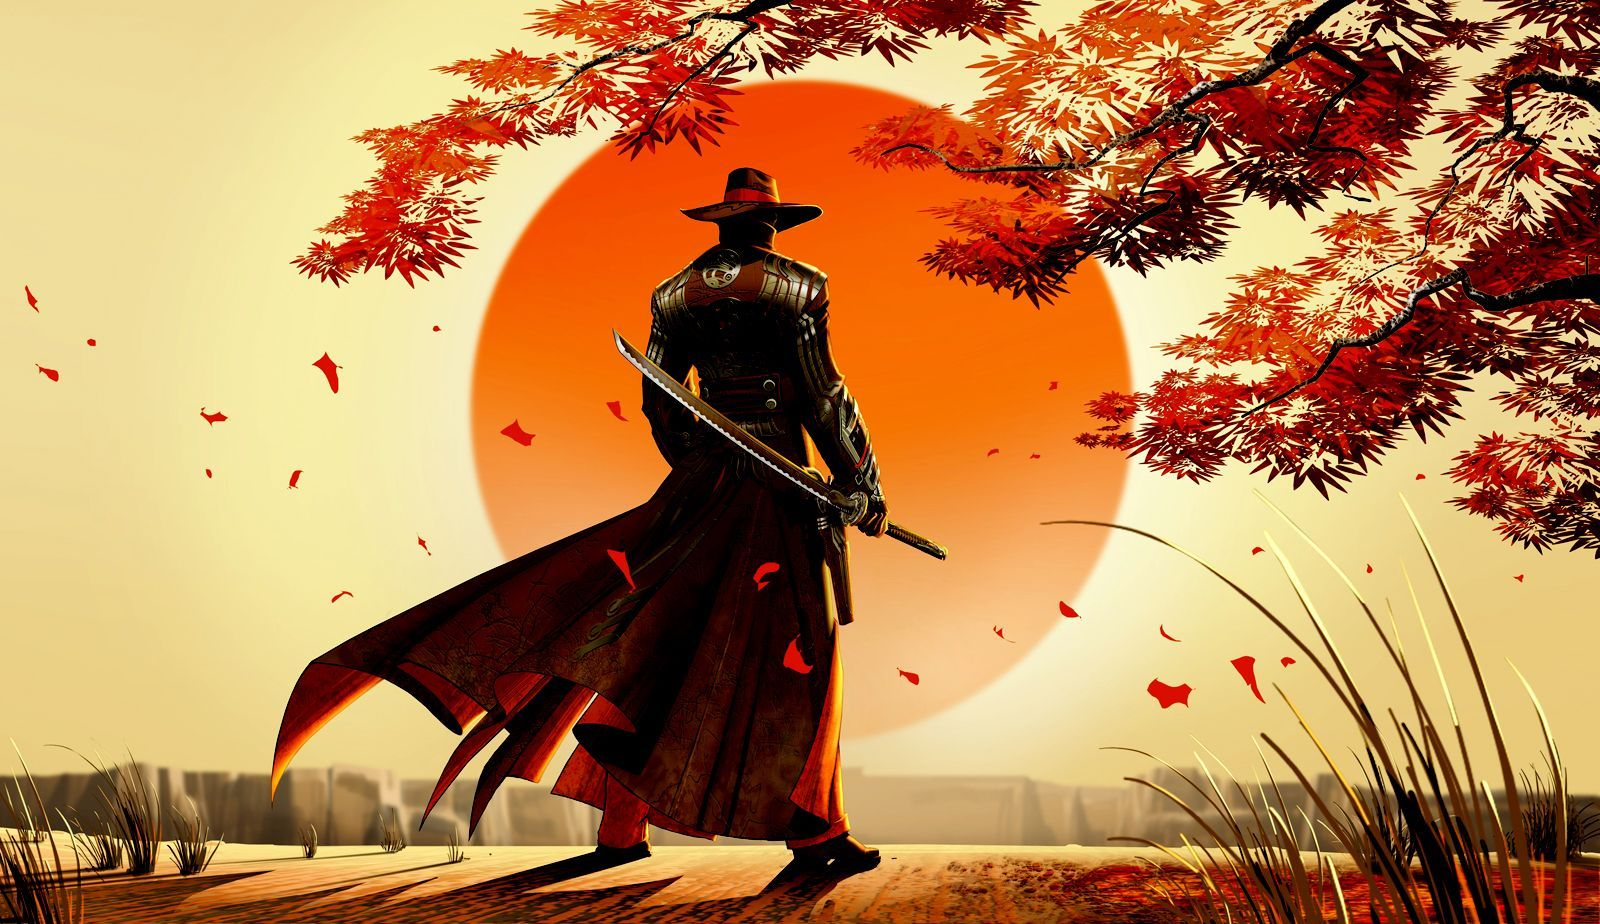 3D Samurai Wallpapers Top Free 3D Samurai Backgrounds